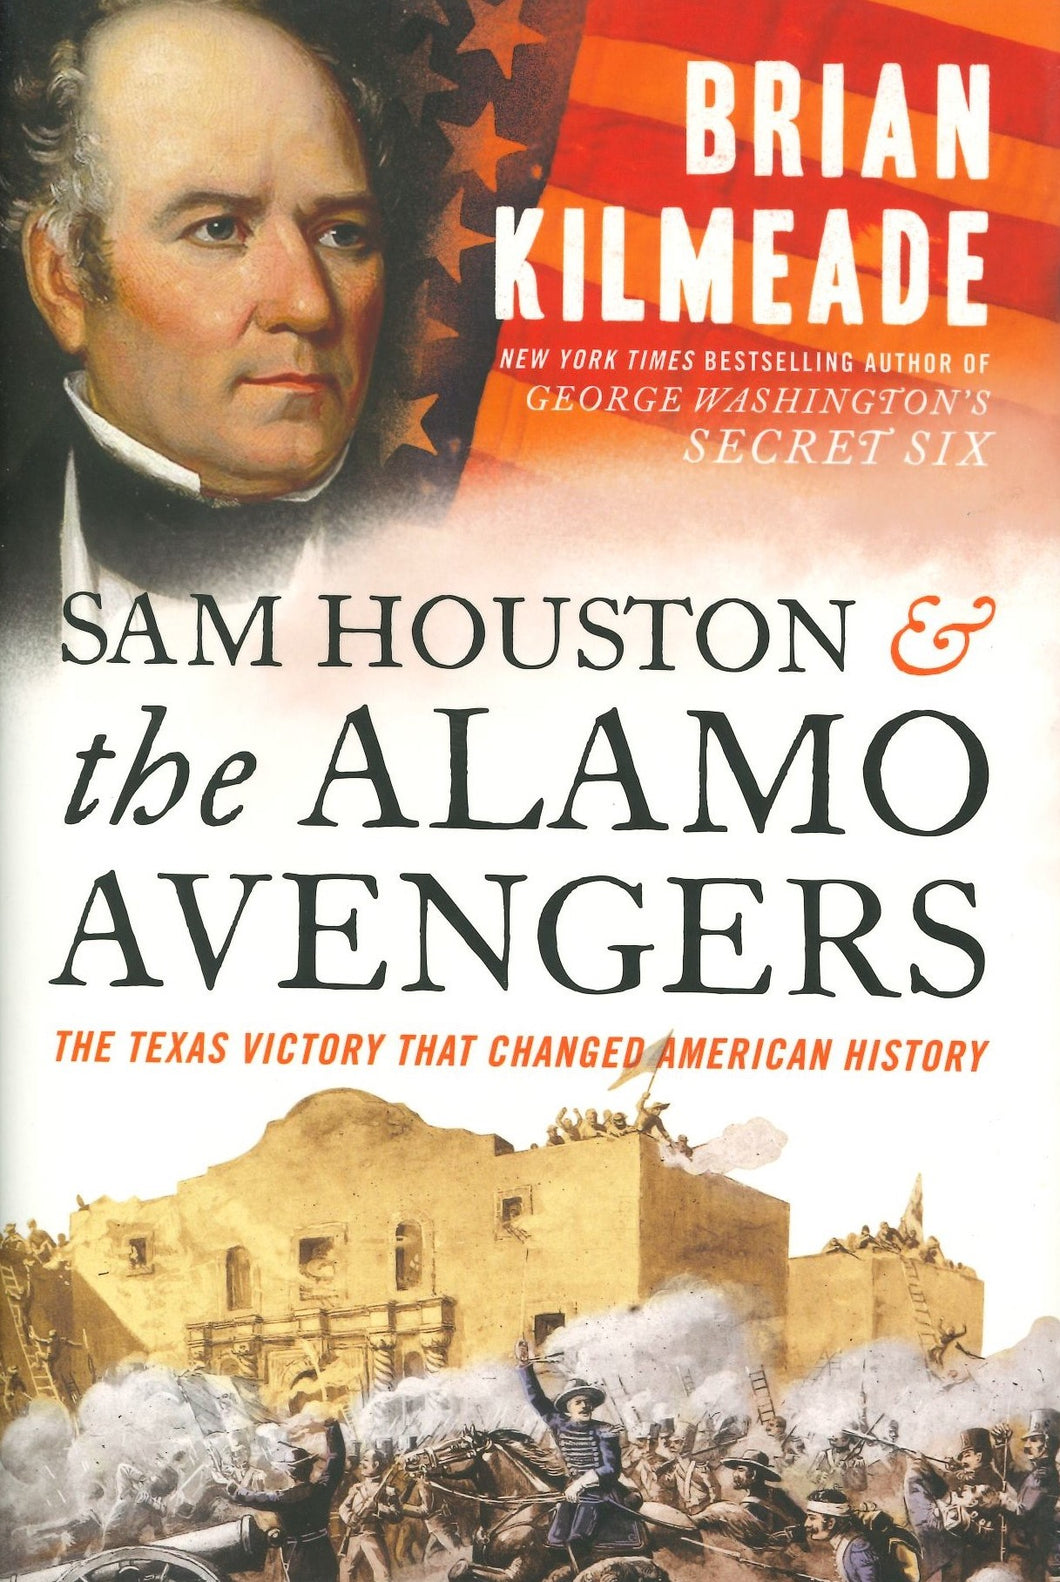 Sam Houston & the Alamo Avengers by Brian Kilmeade